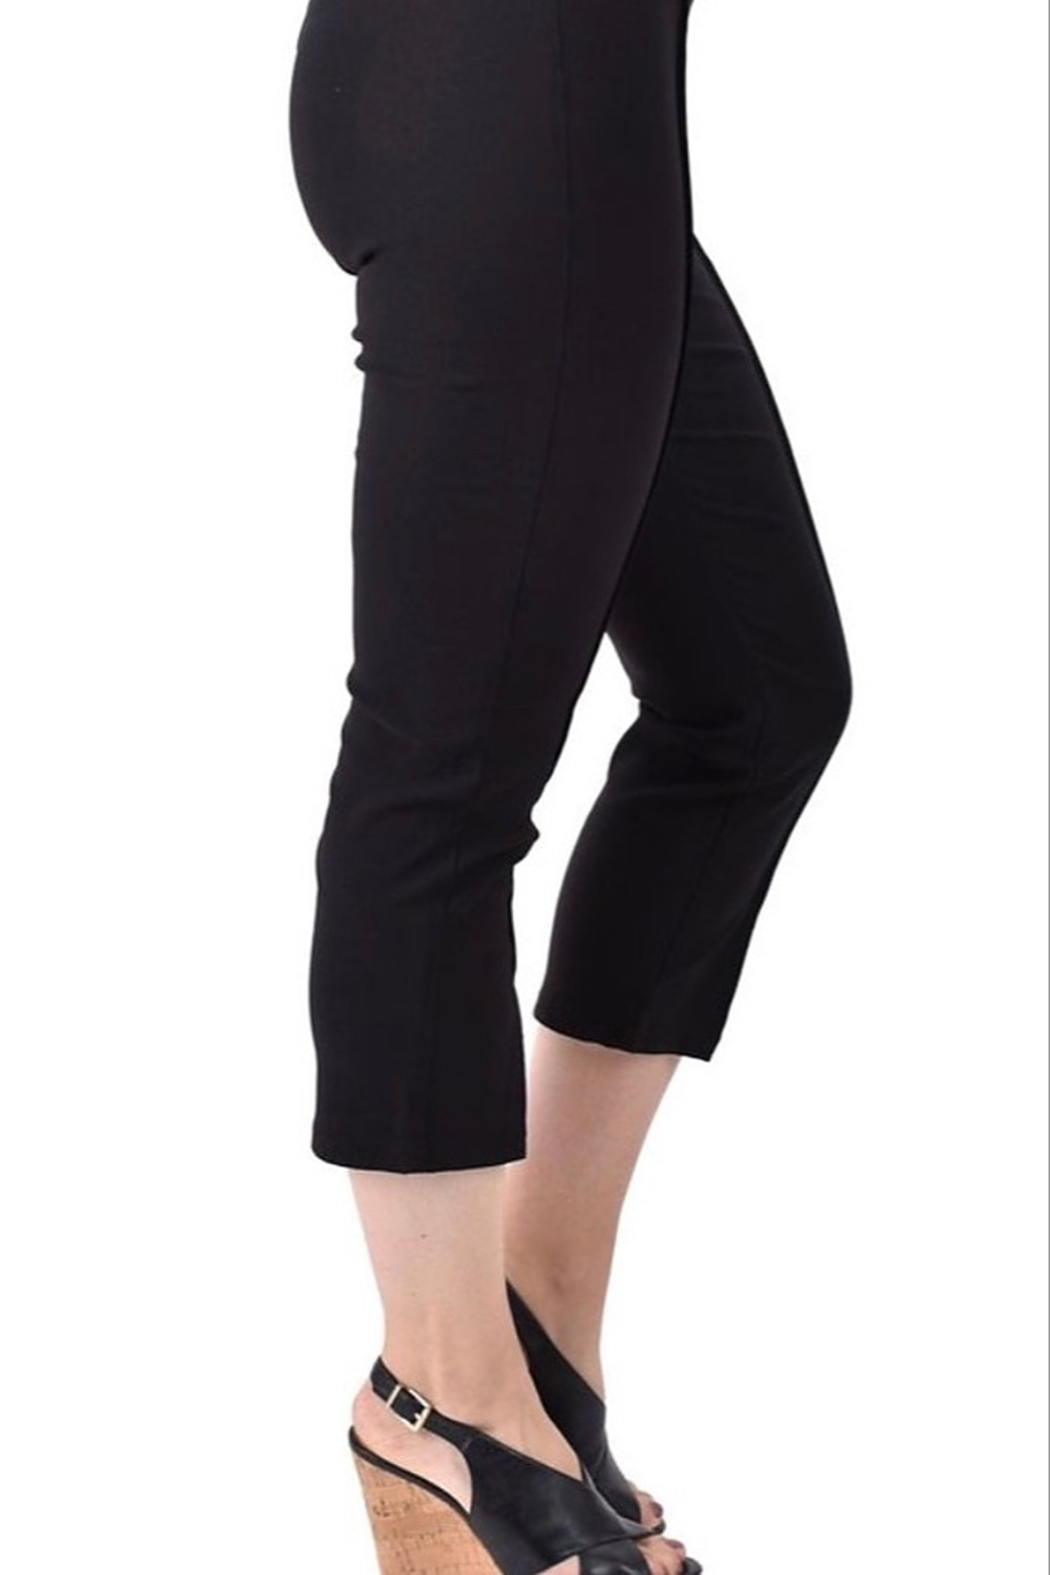 Ethyl Pembroke Pines Pull on black pant with front seam and slits at bottom. - Front Full Image